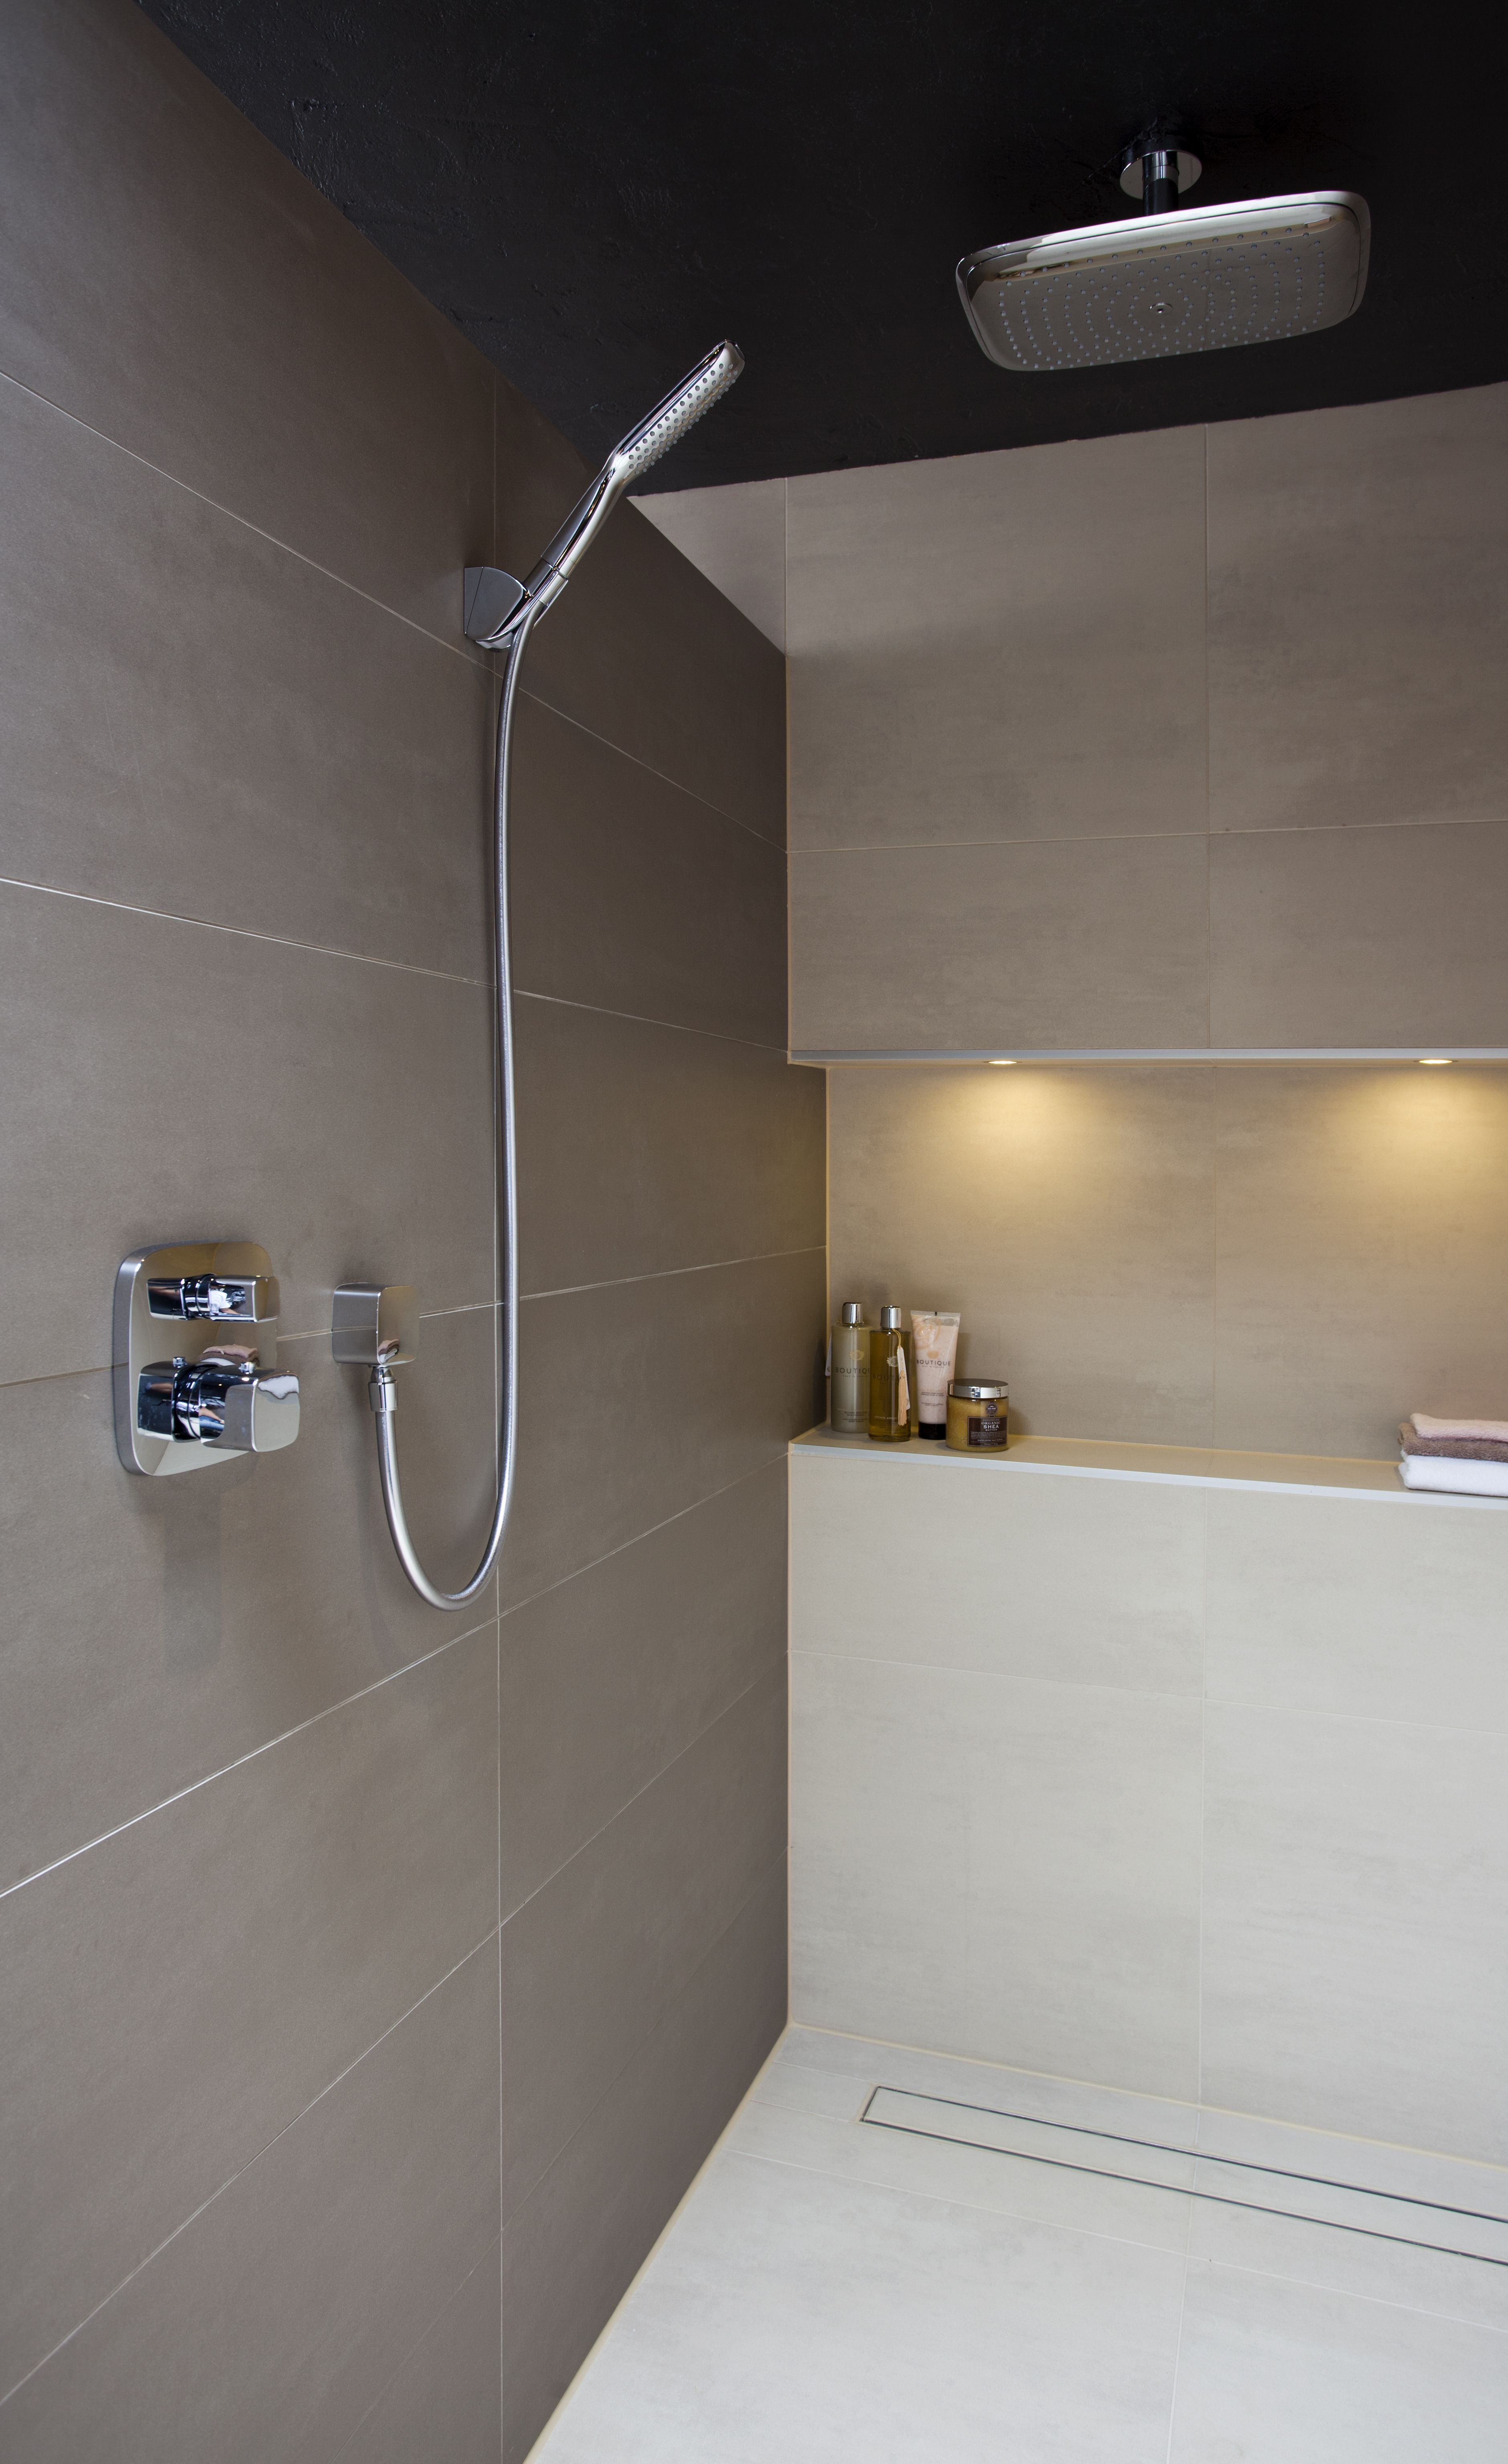 Beleuchtung Badezimmer Pinterest Designer Wetroom With Rainfall Shower Head And Hand Held